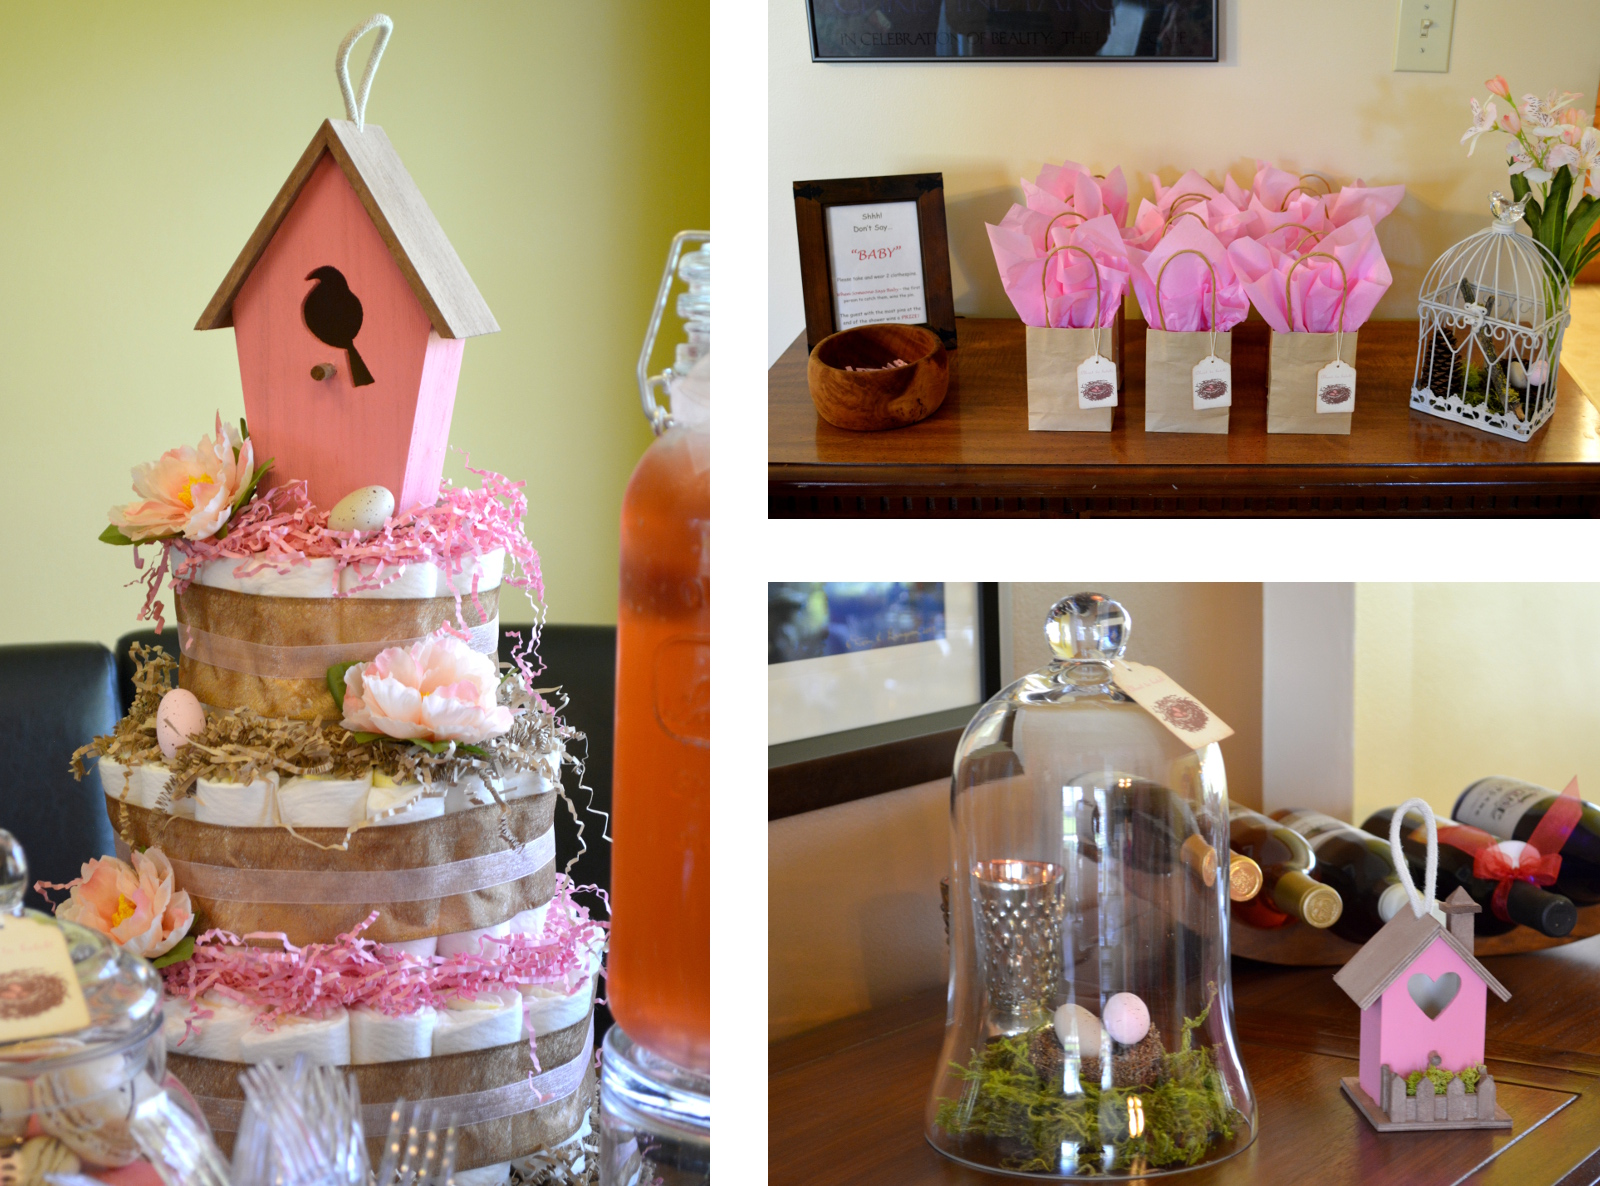 cozy birdhouse | about to hatch... my baby shower!